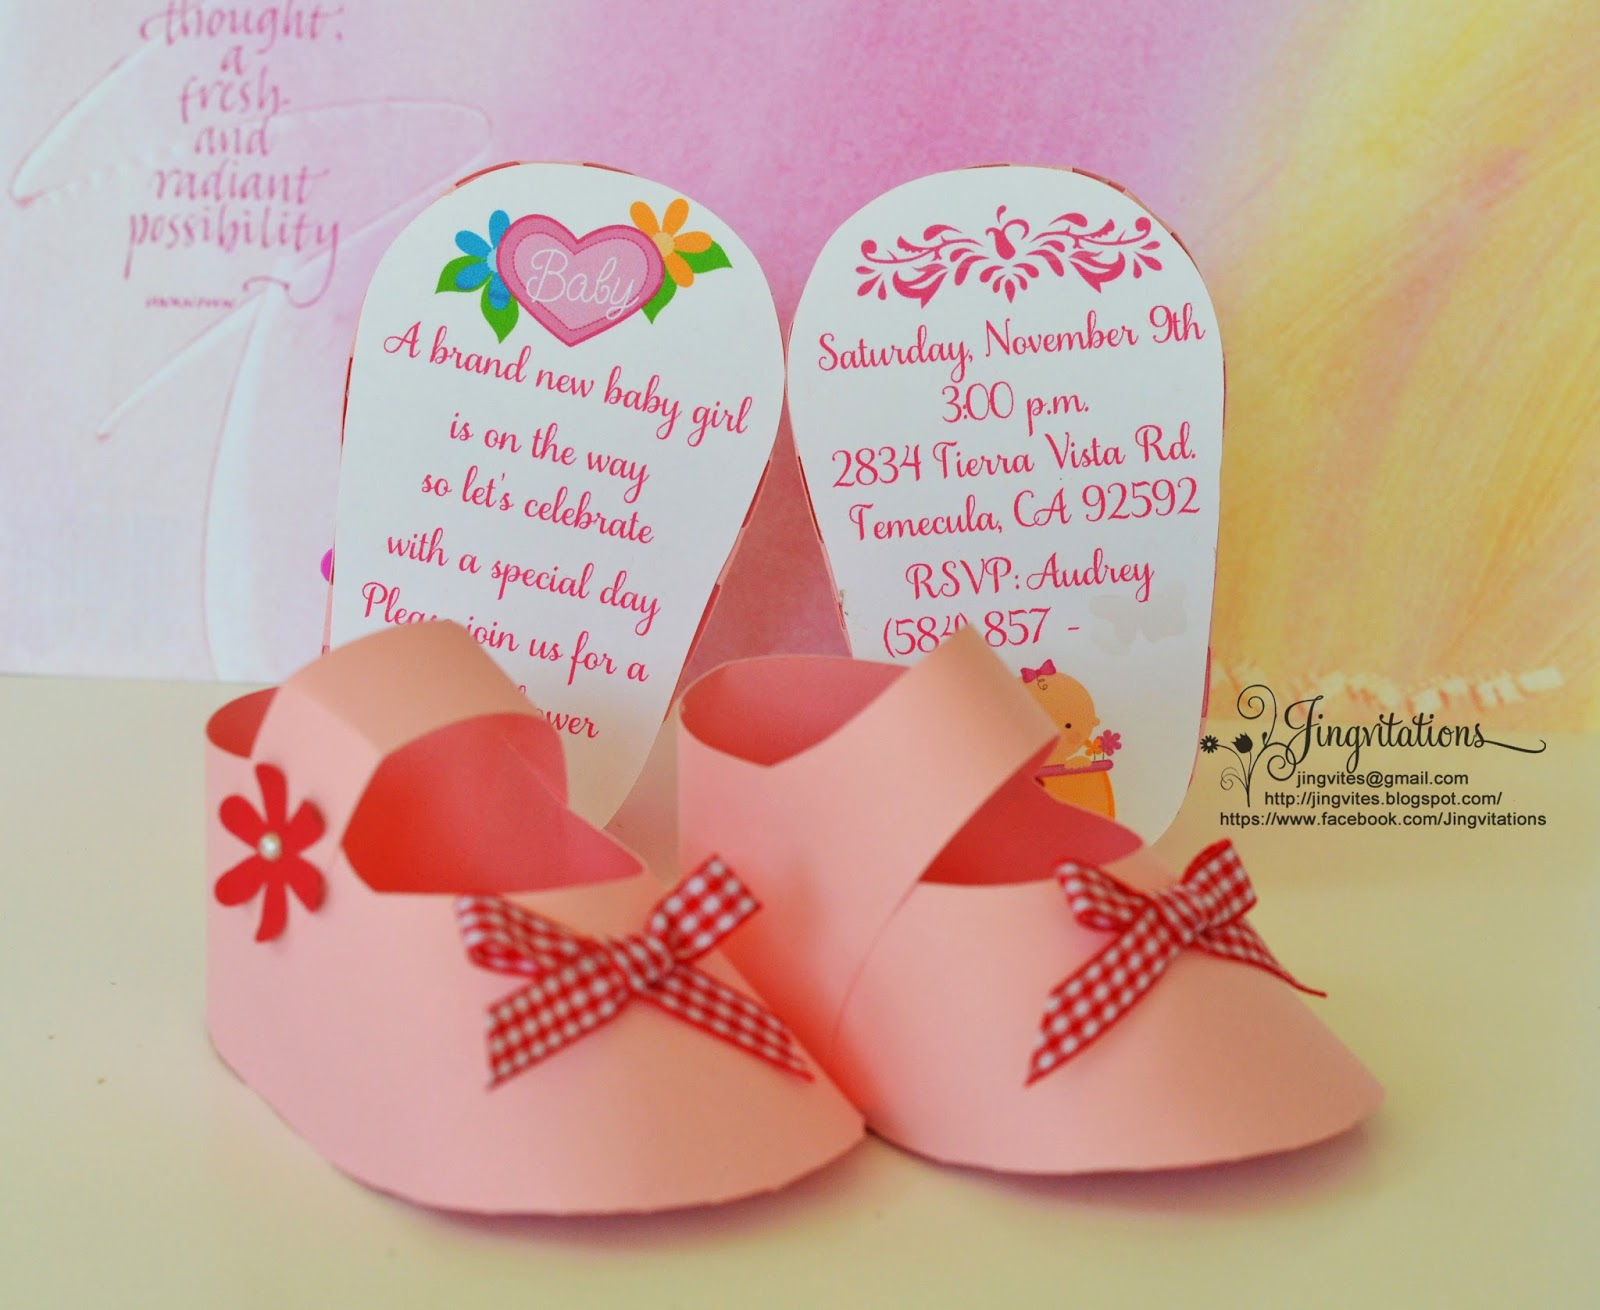 Jingvitations: 3D Invitations: Very Unique Baby Shoe Invites for ...